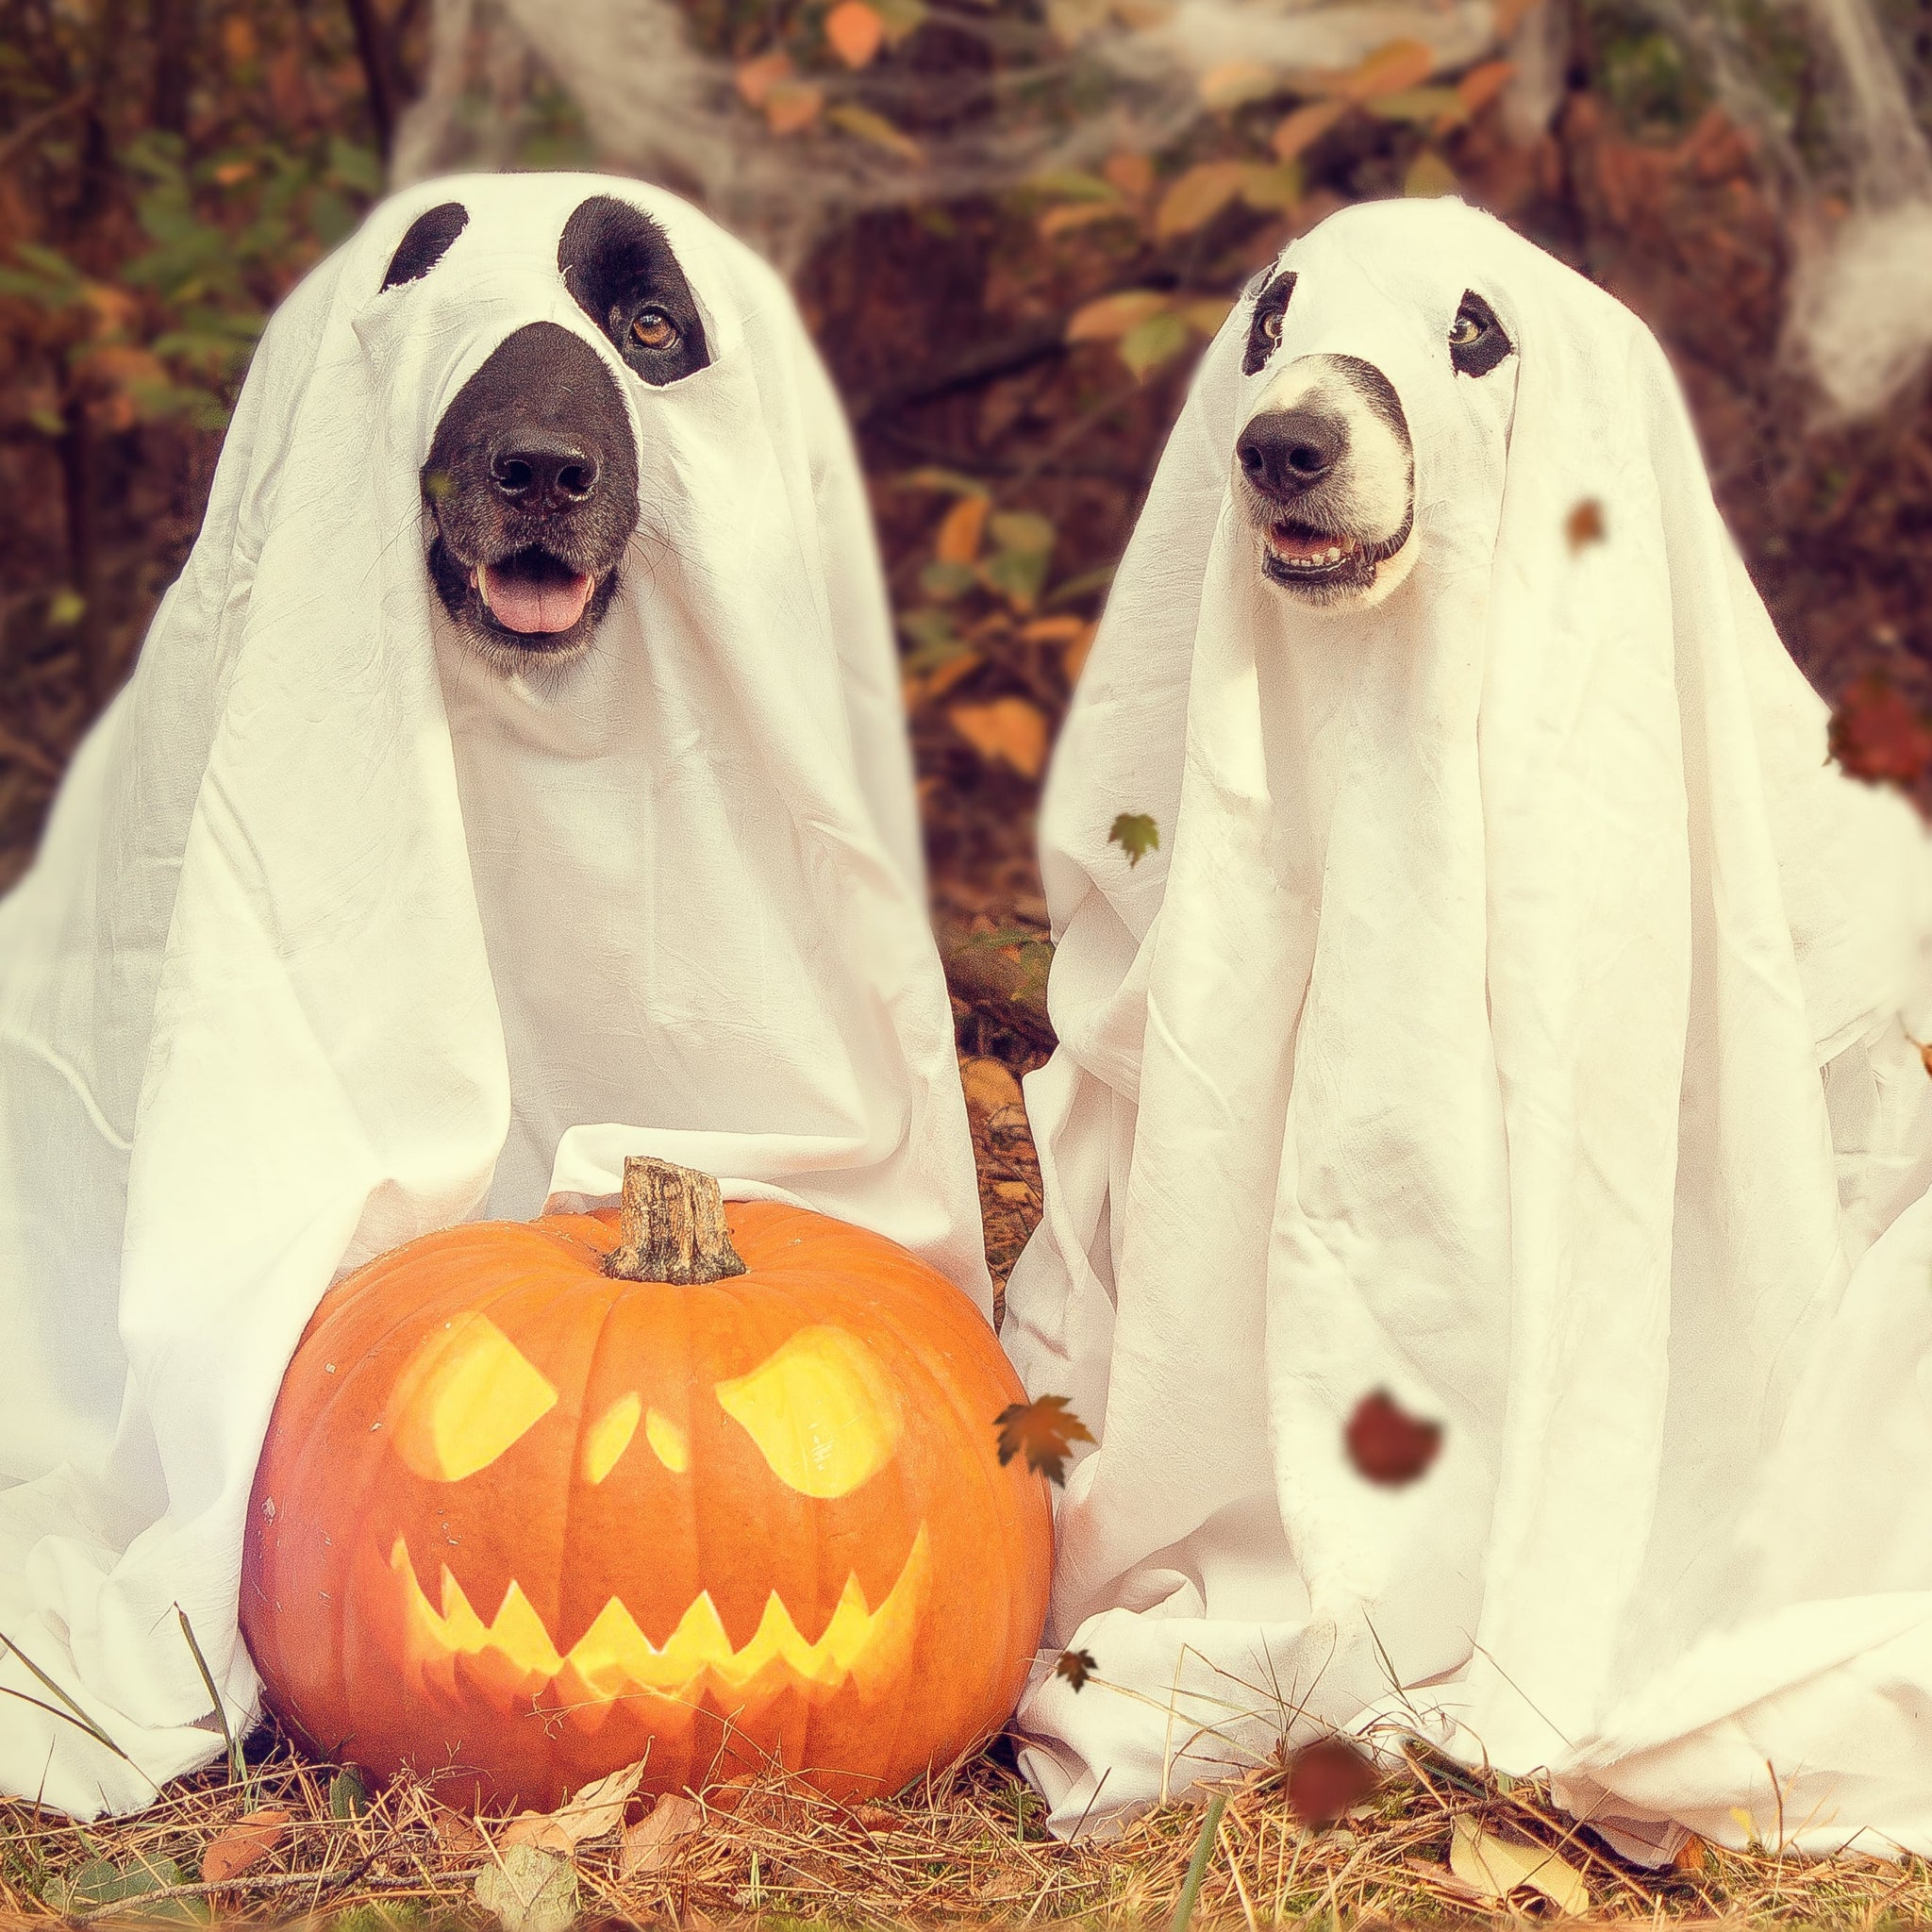 Keeping Your Dog Safe This Halloween